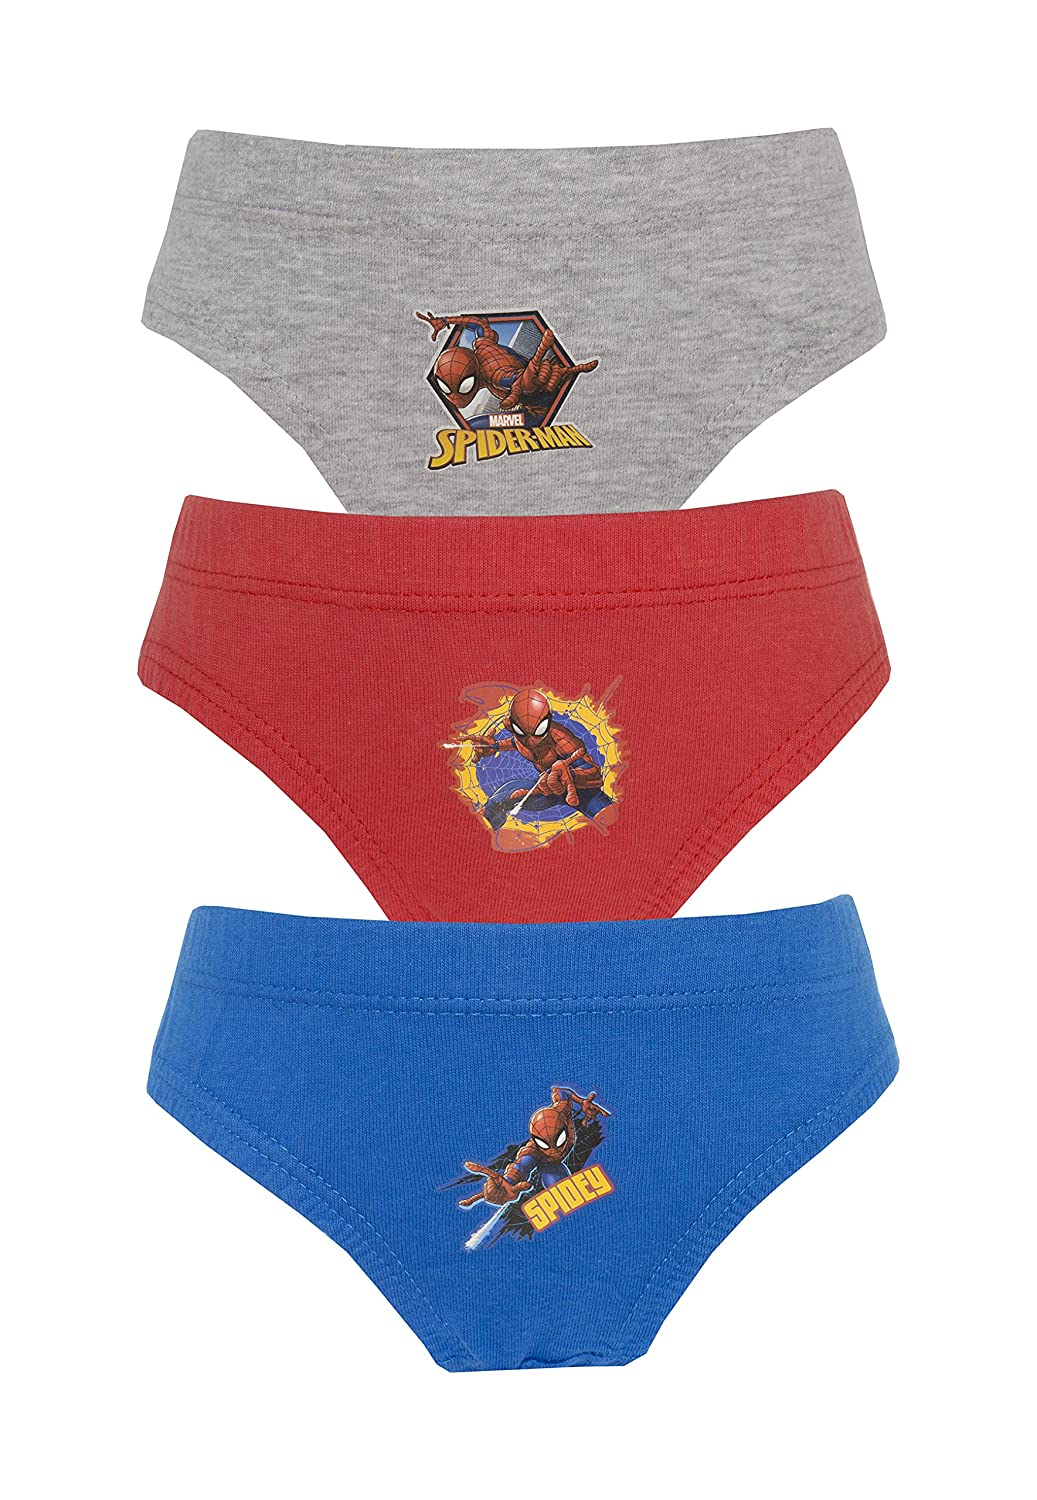 Cartoon Character Products 3 Pack Marvel's Spiderman Boys Pants/Briefs, Sizes 2-8 Years